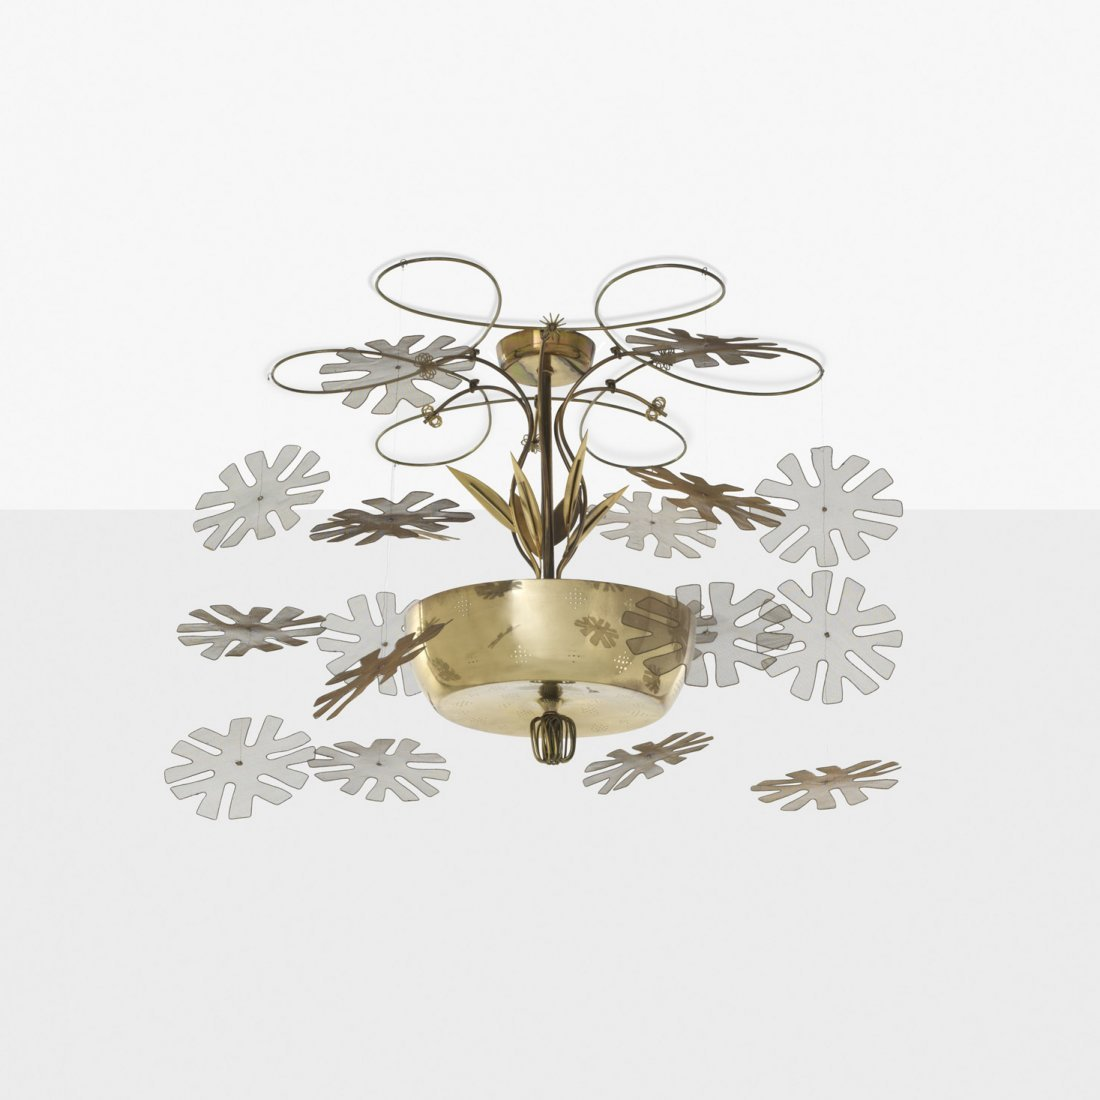 105: Paavo Tynell chandelier